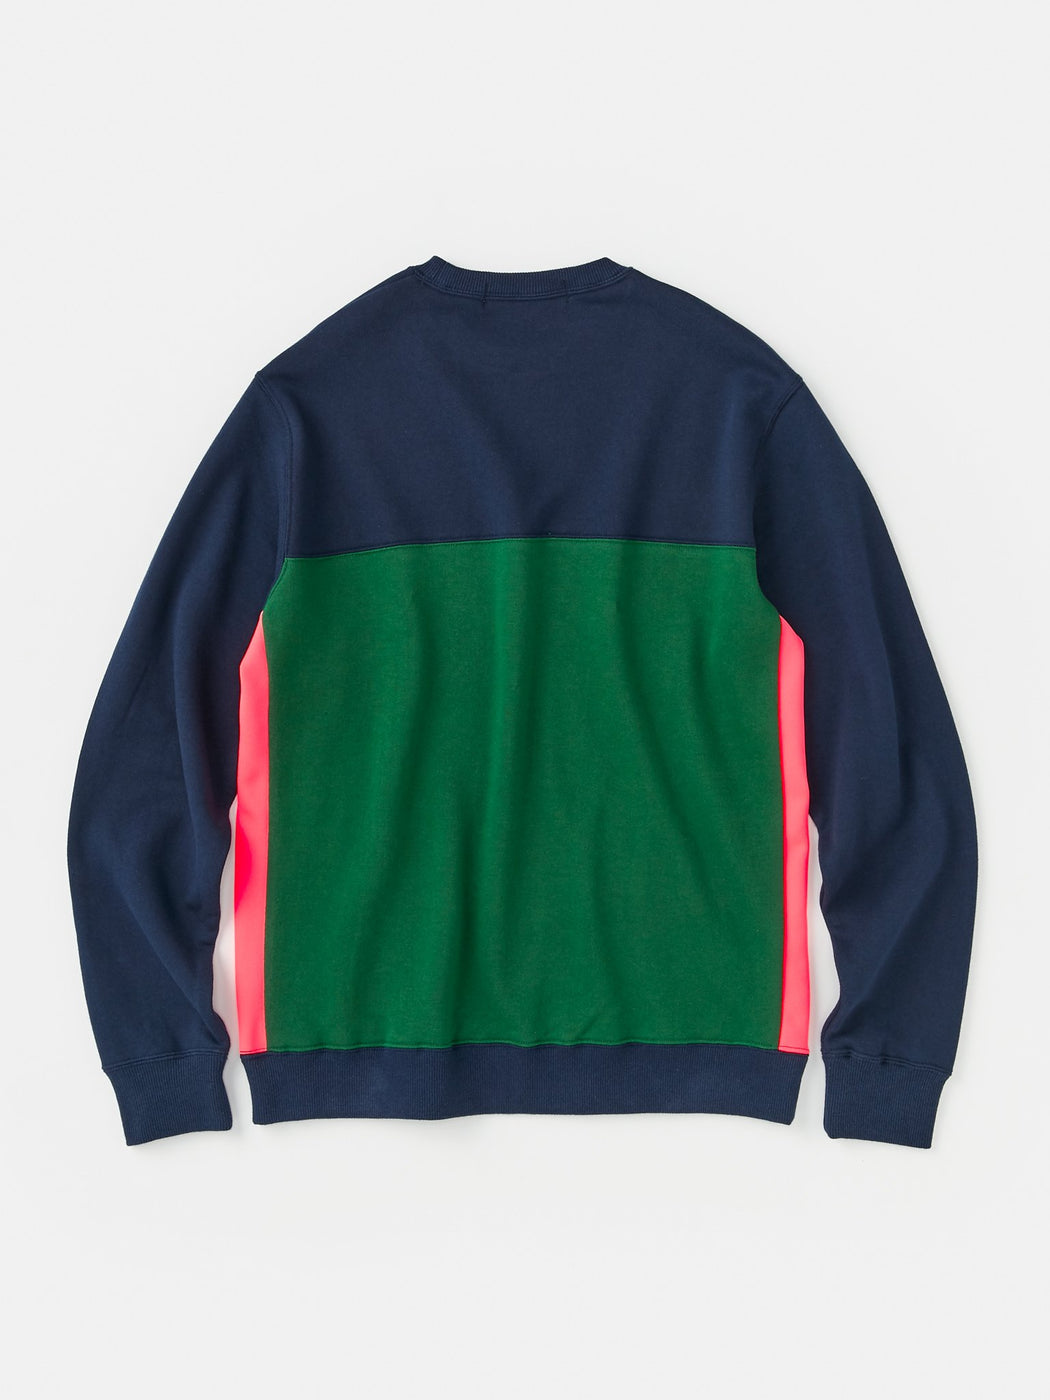 ALOYE Color Block Sweatshirt Navy-Green-Pink